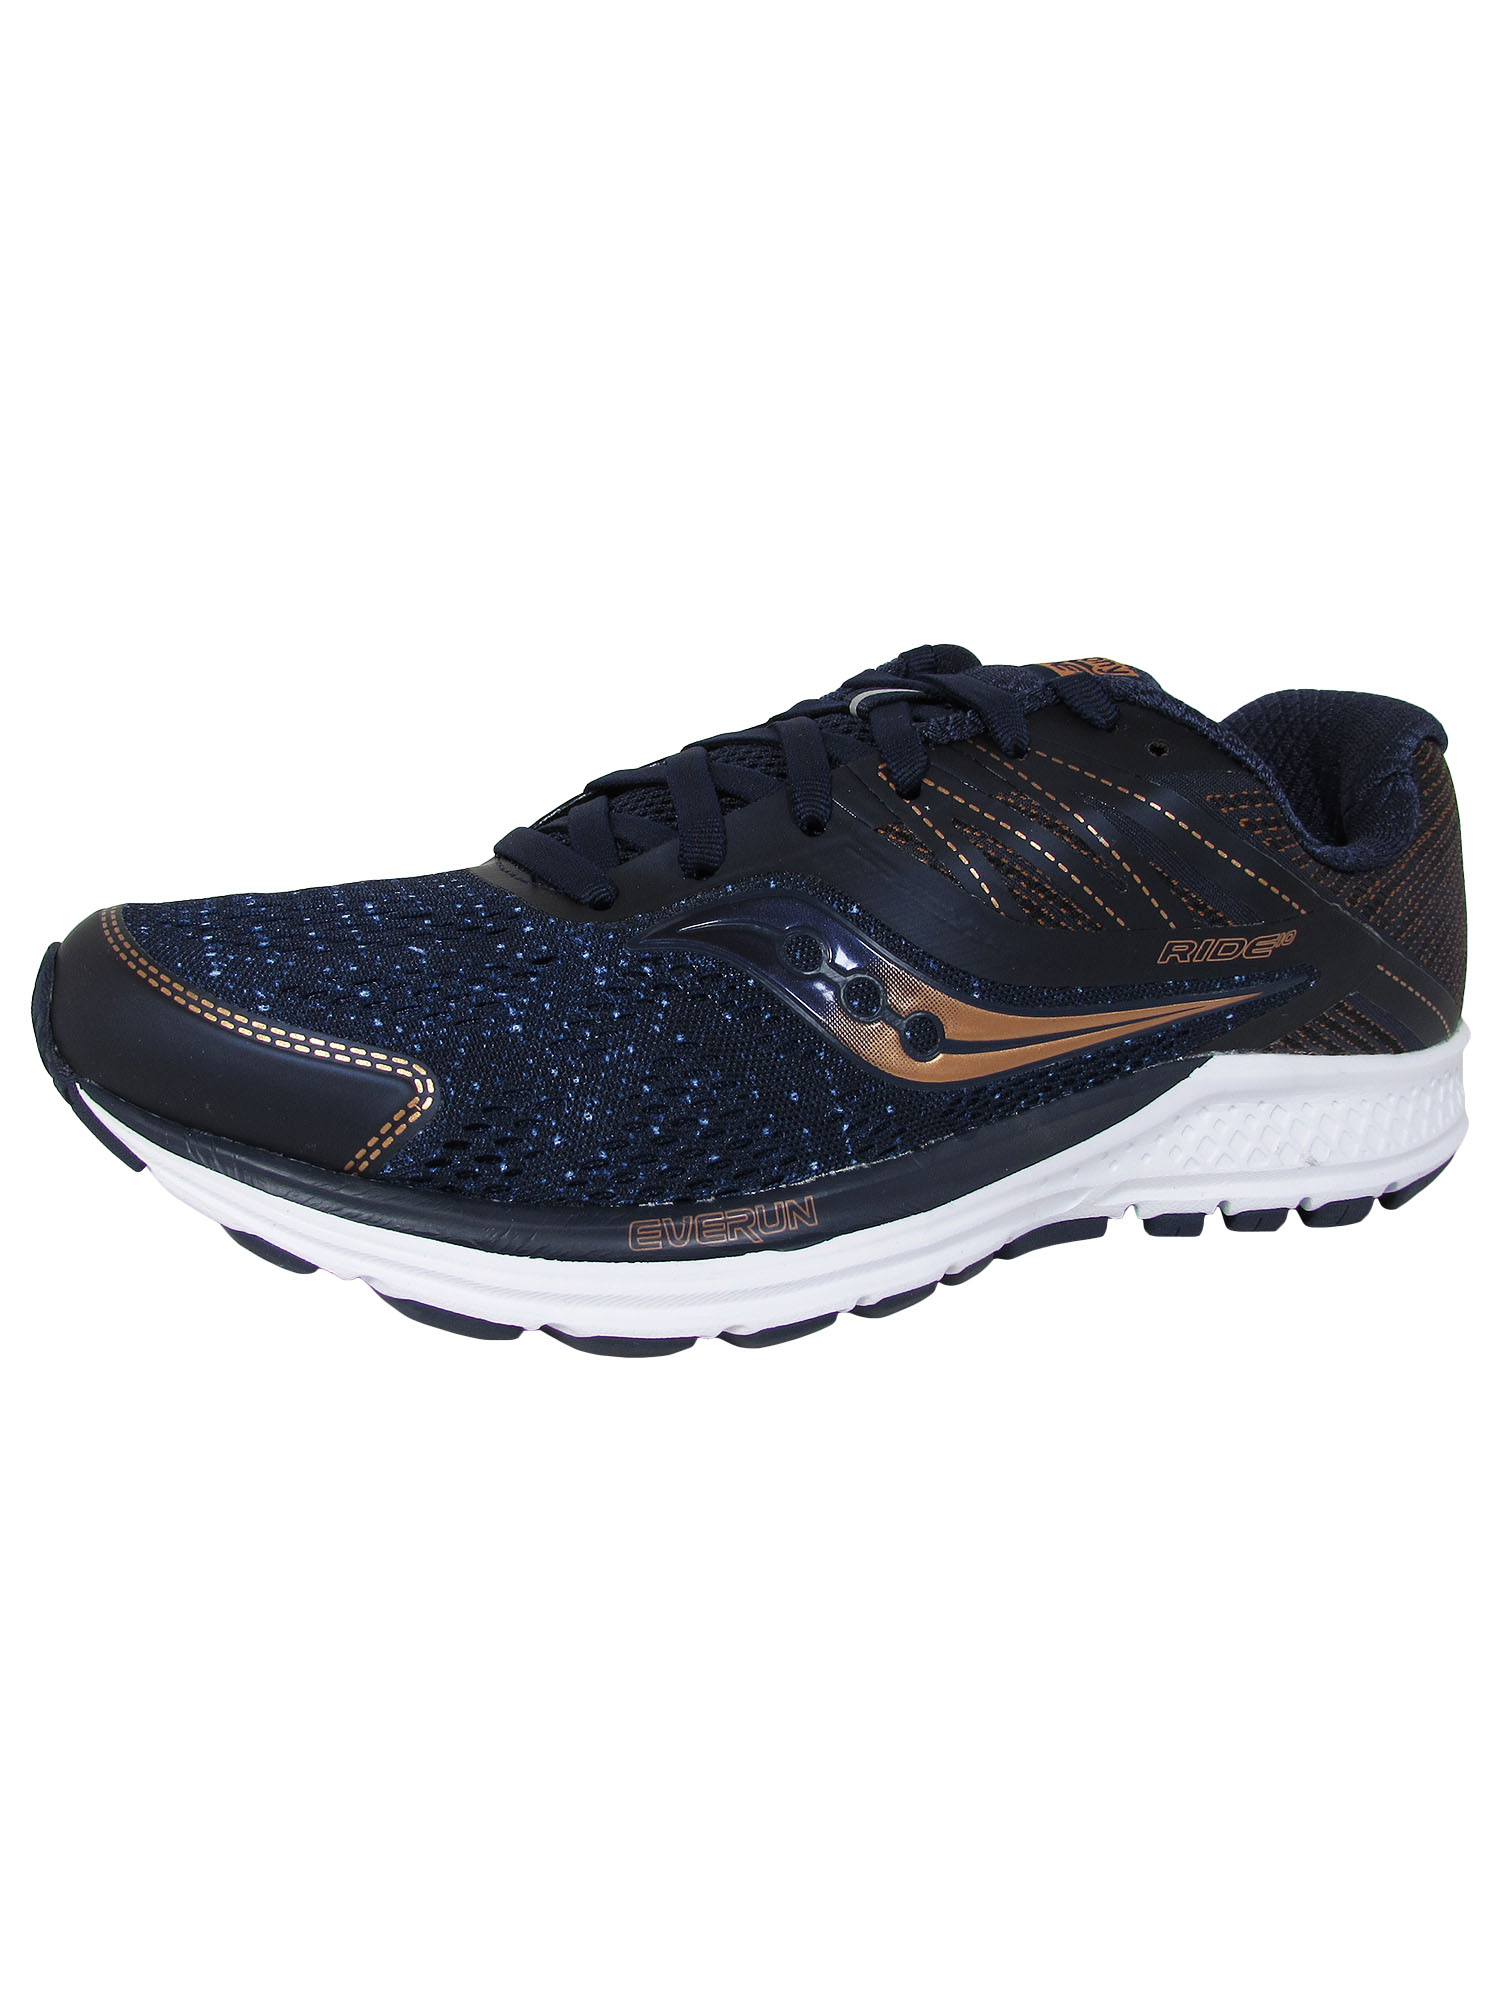 Saucony Womens Ride 10 Running Sneaker Shoes by Saucony